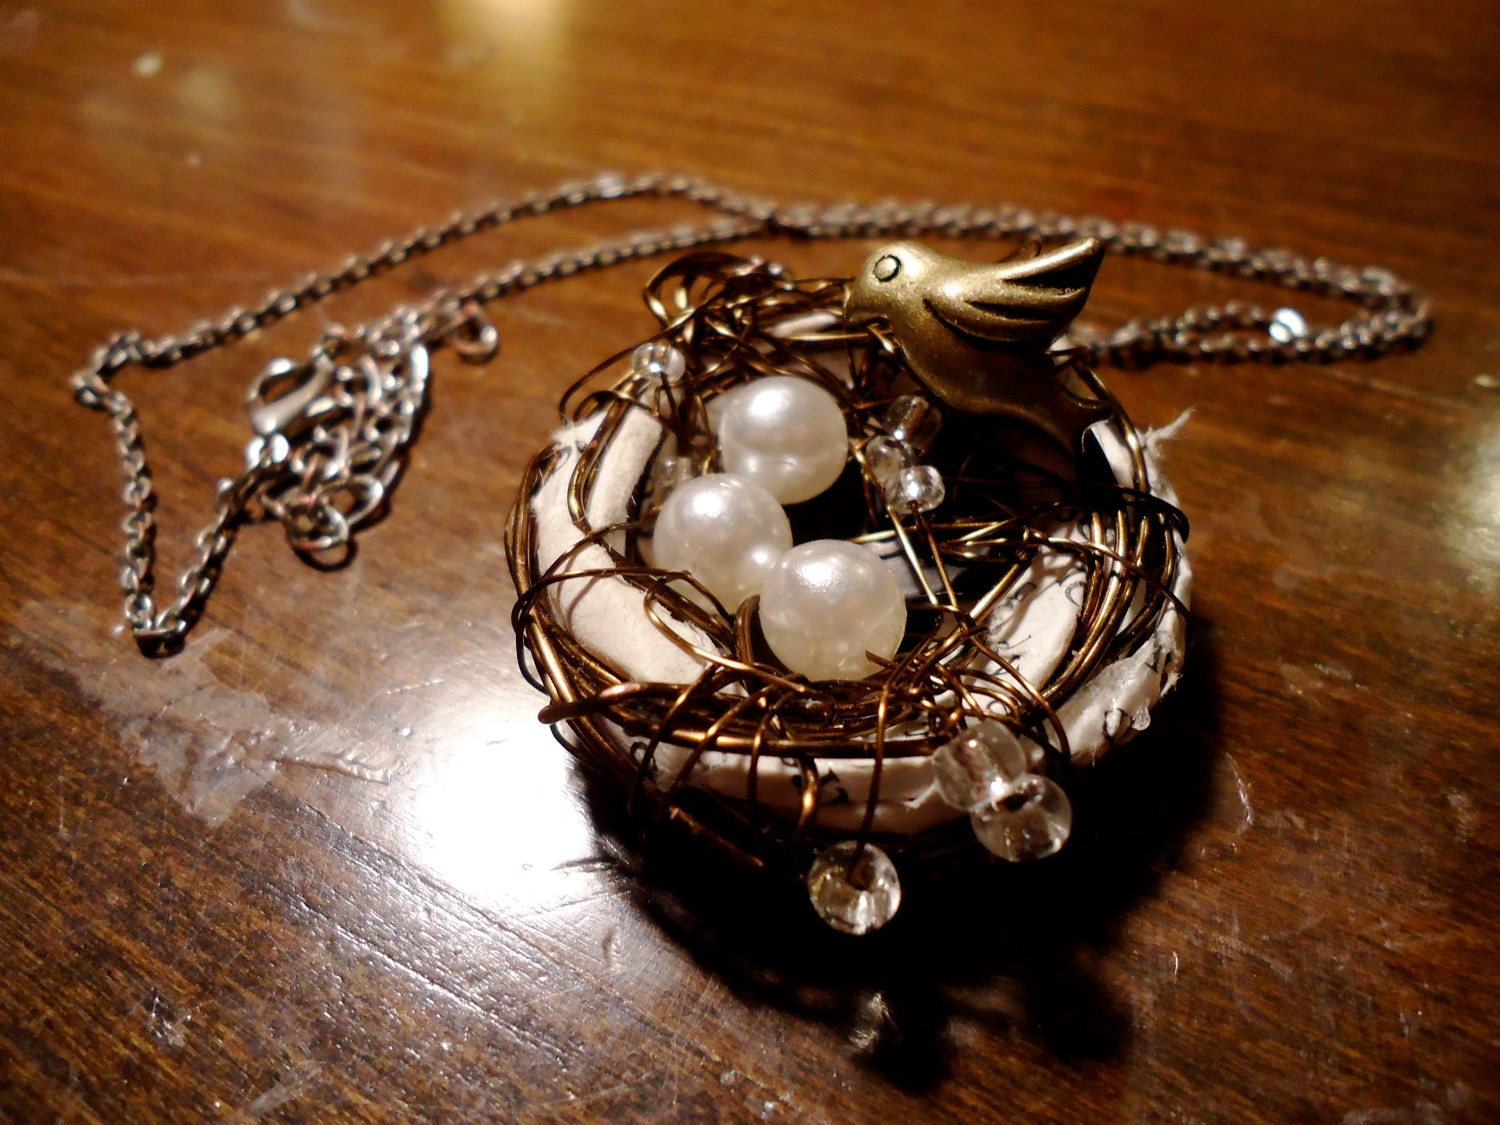 Wire Wrapped and Book Page Lined Birds Nest Necklace with Bird Charm